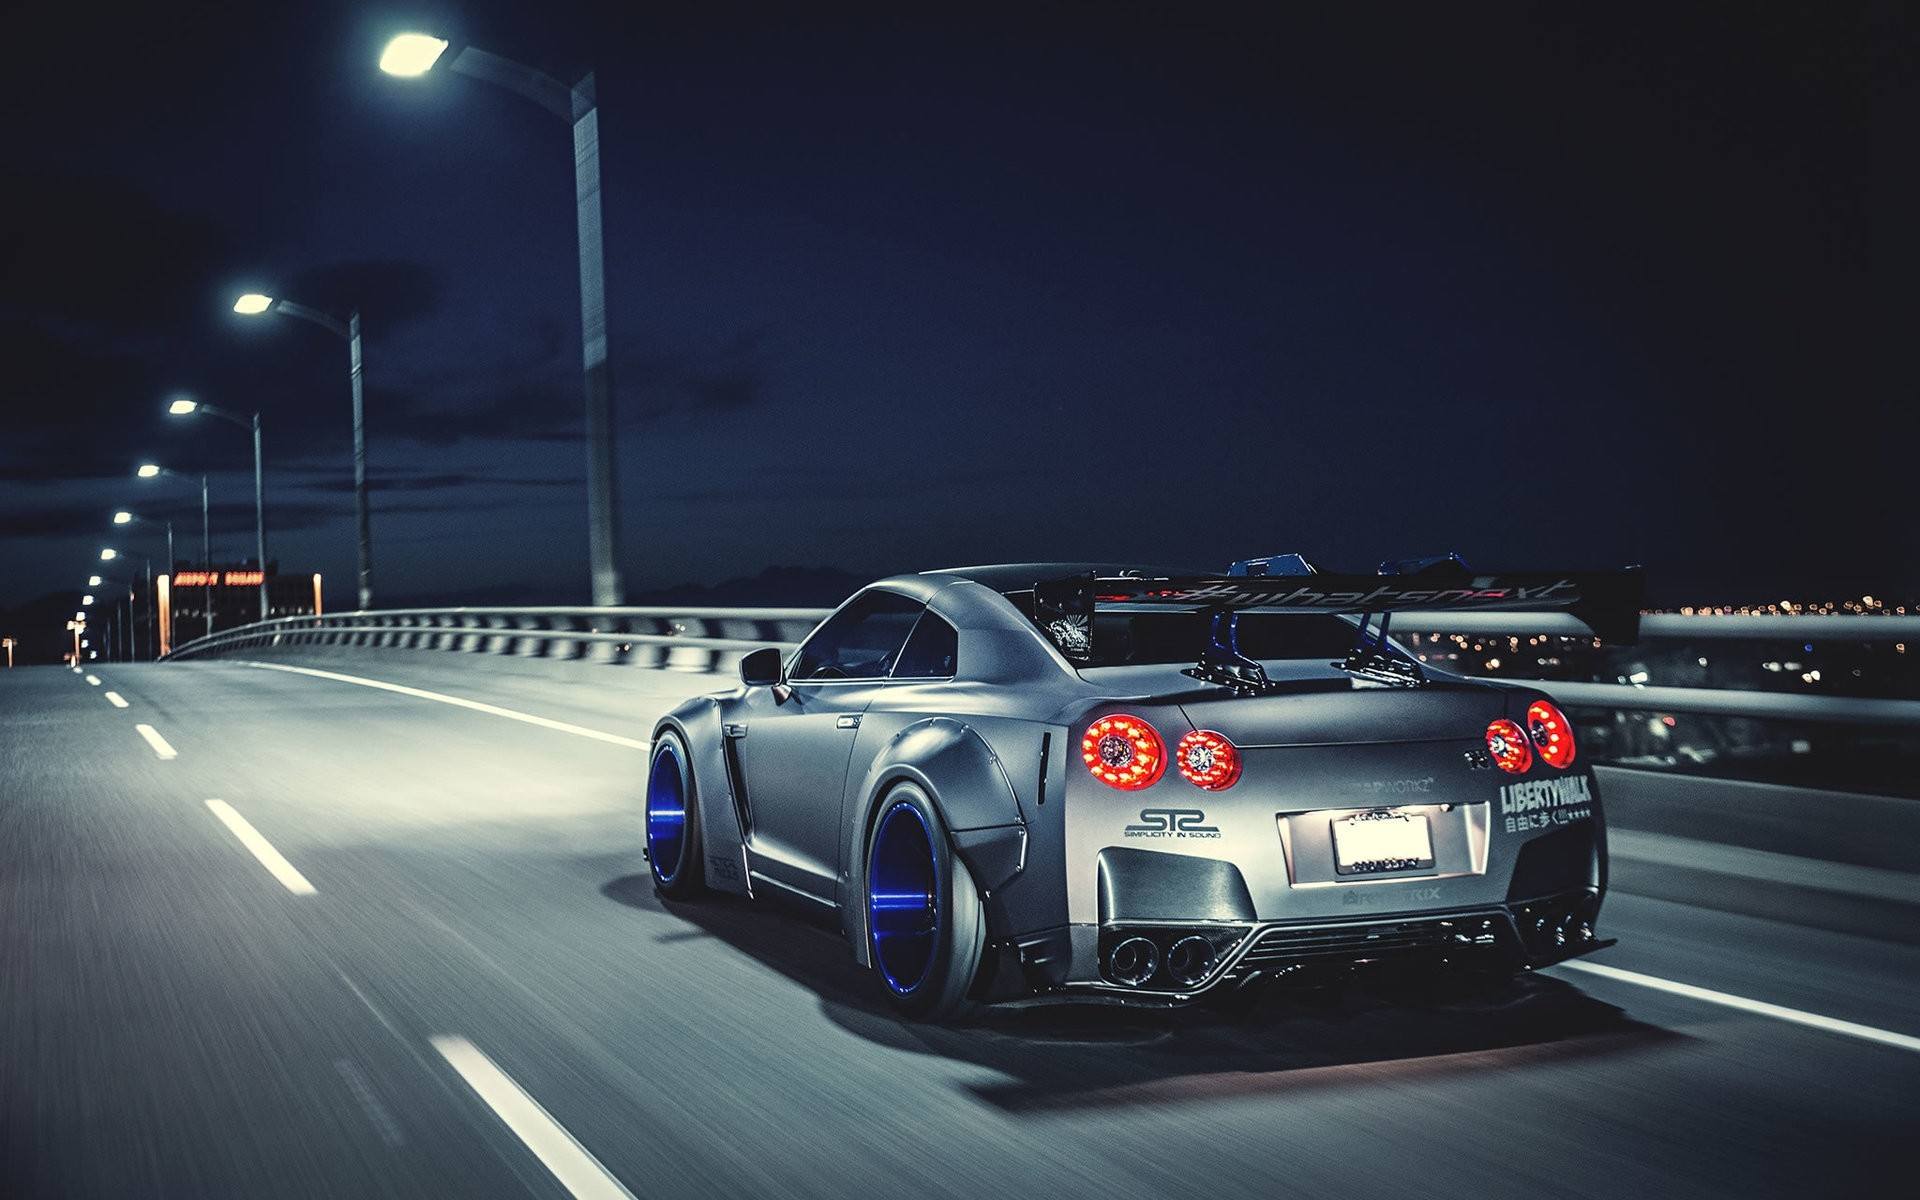 nissan gtr liberty walk tuning uhd wallpapers – Ultra High Definition .